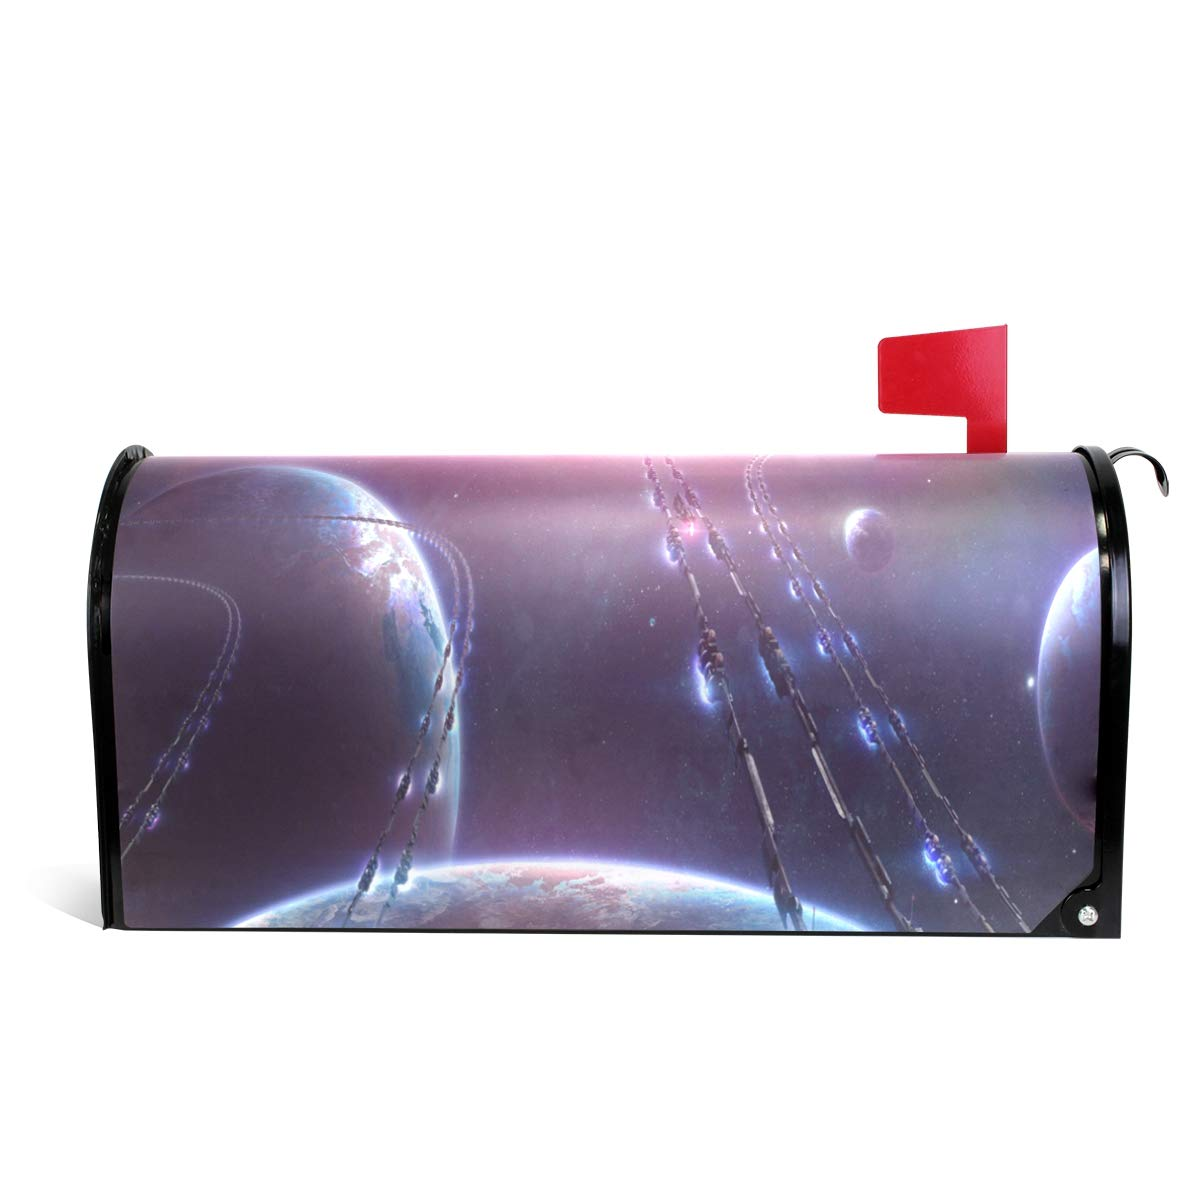 CHENG XIN Mailbox Cover Personalized Bright Light in Space Magnetic PVC Suitable for US Mailbox